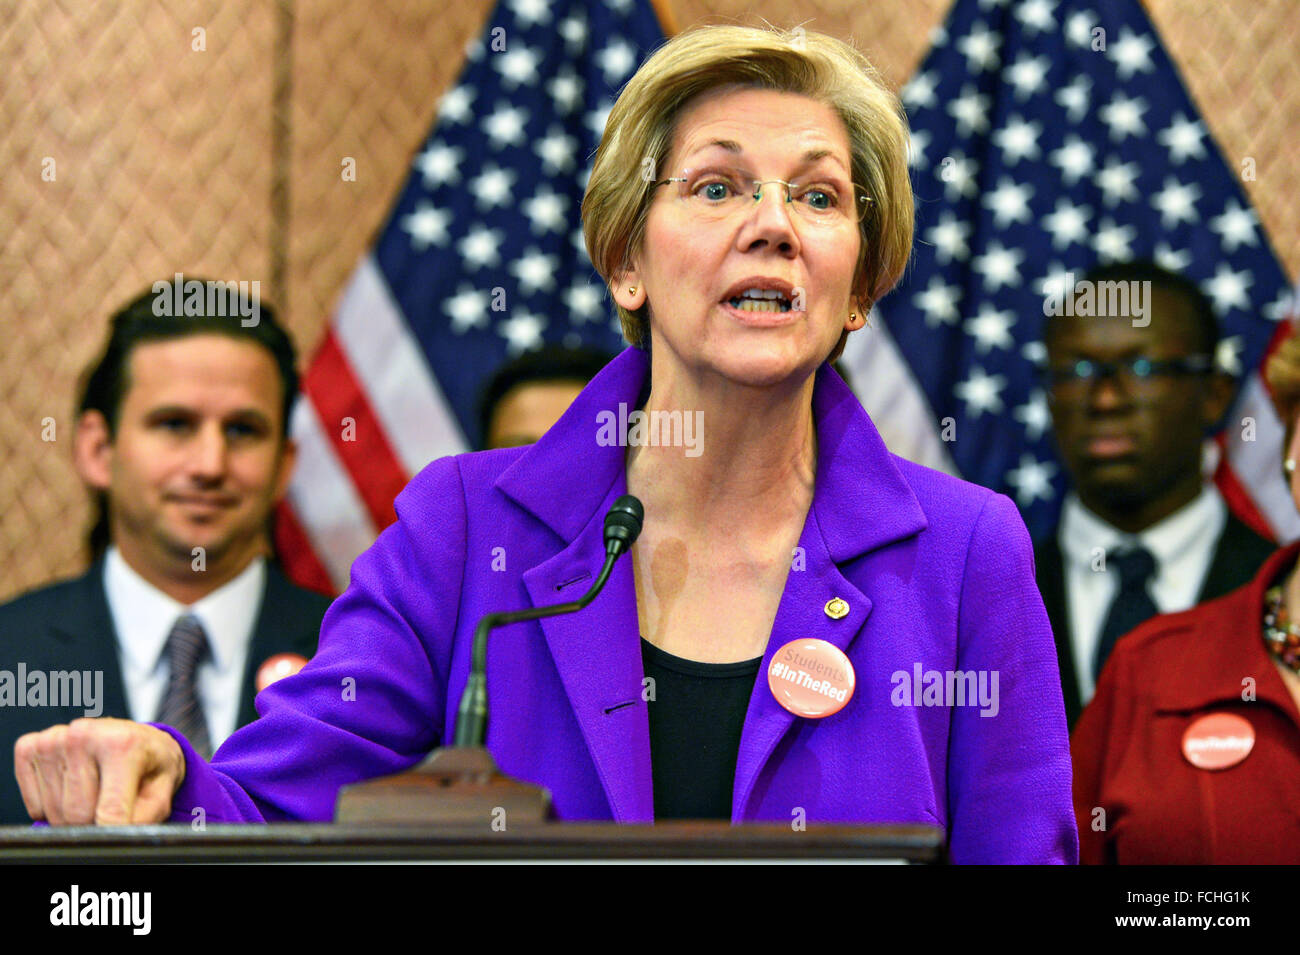 US Senator Elizabeth Warren comments on new Democratic legislation on college affordability called In the Red during - Stock Image